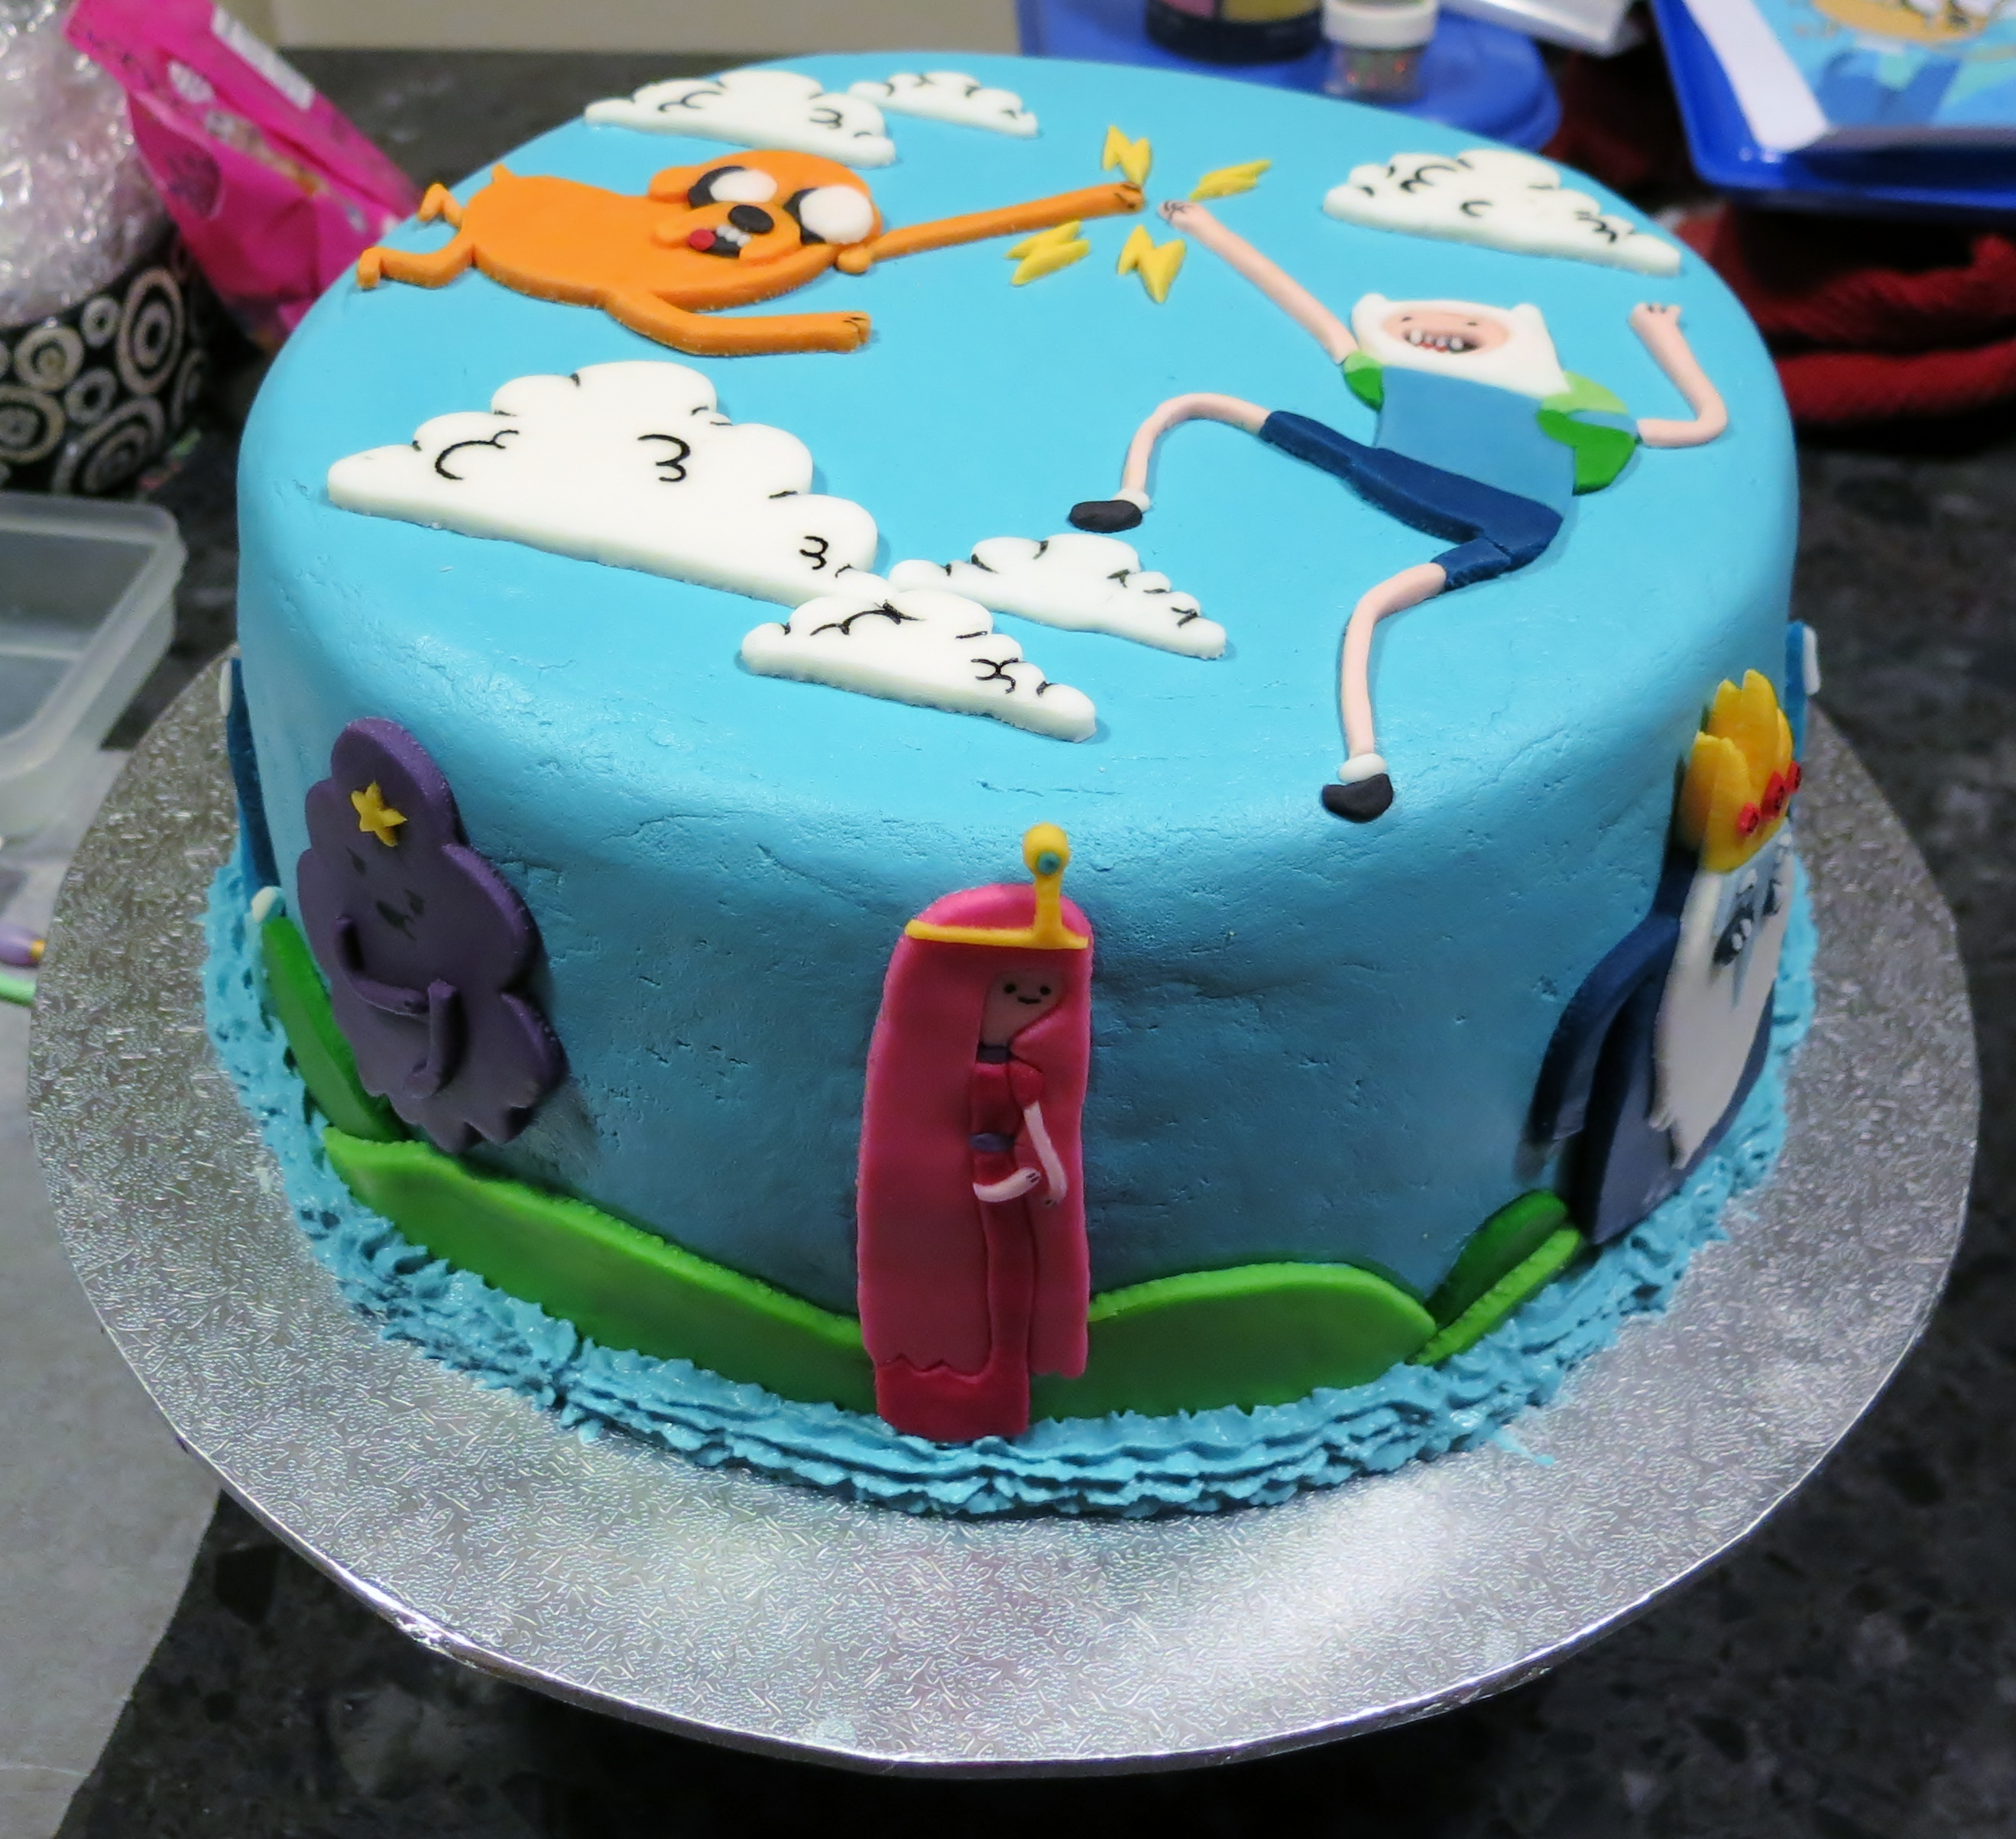 Cake Design Adventure Time : Adventure Time Cake   Part 2: How I made the figures ...